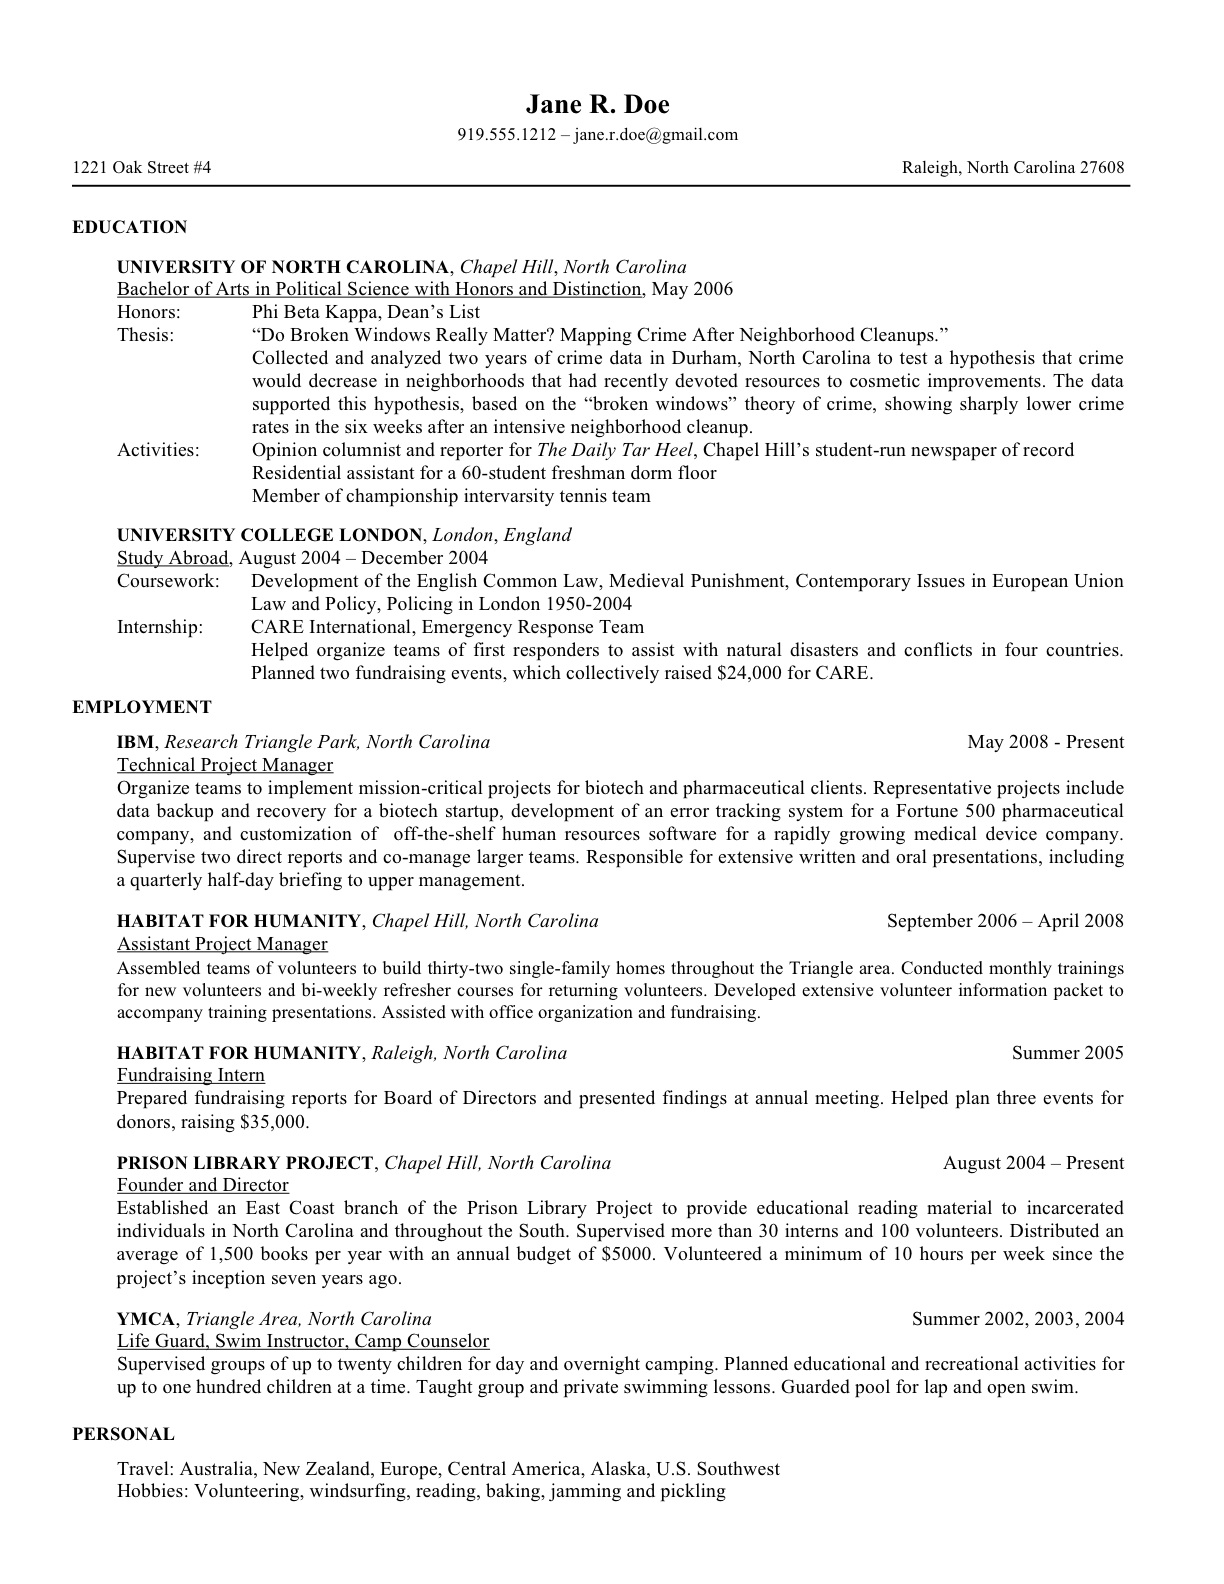 sample resume for applying to graduate school, law school application resume sample, sample resume for applying job, sample of resume for fresh graduate, free-sampleresumes.blogspot.com